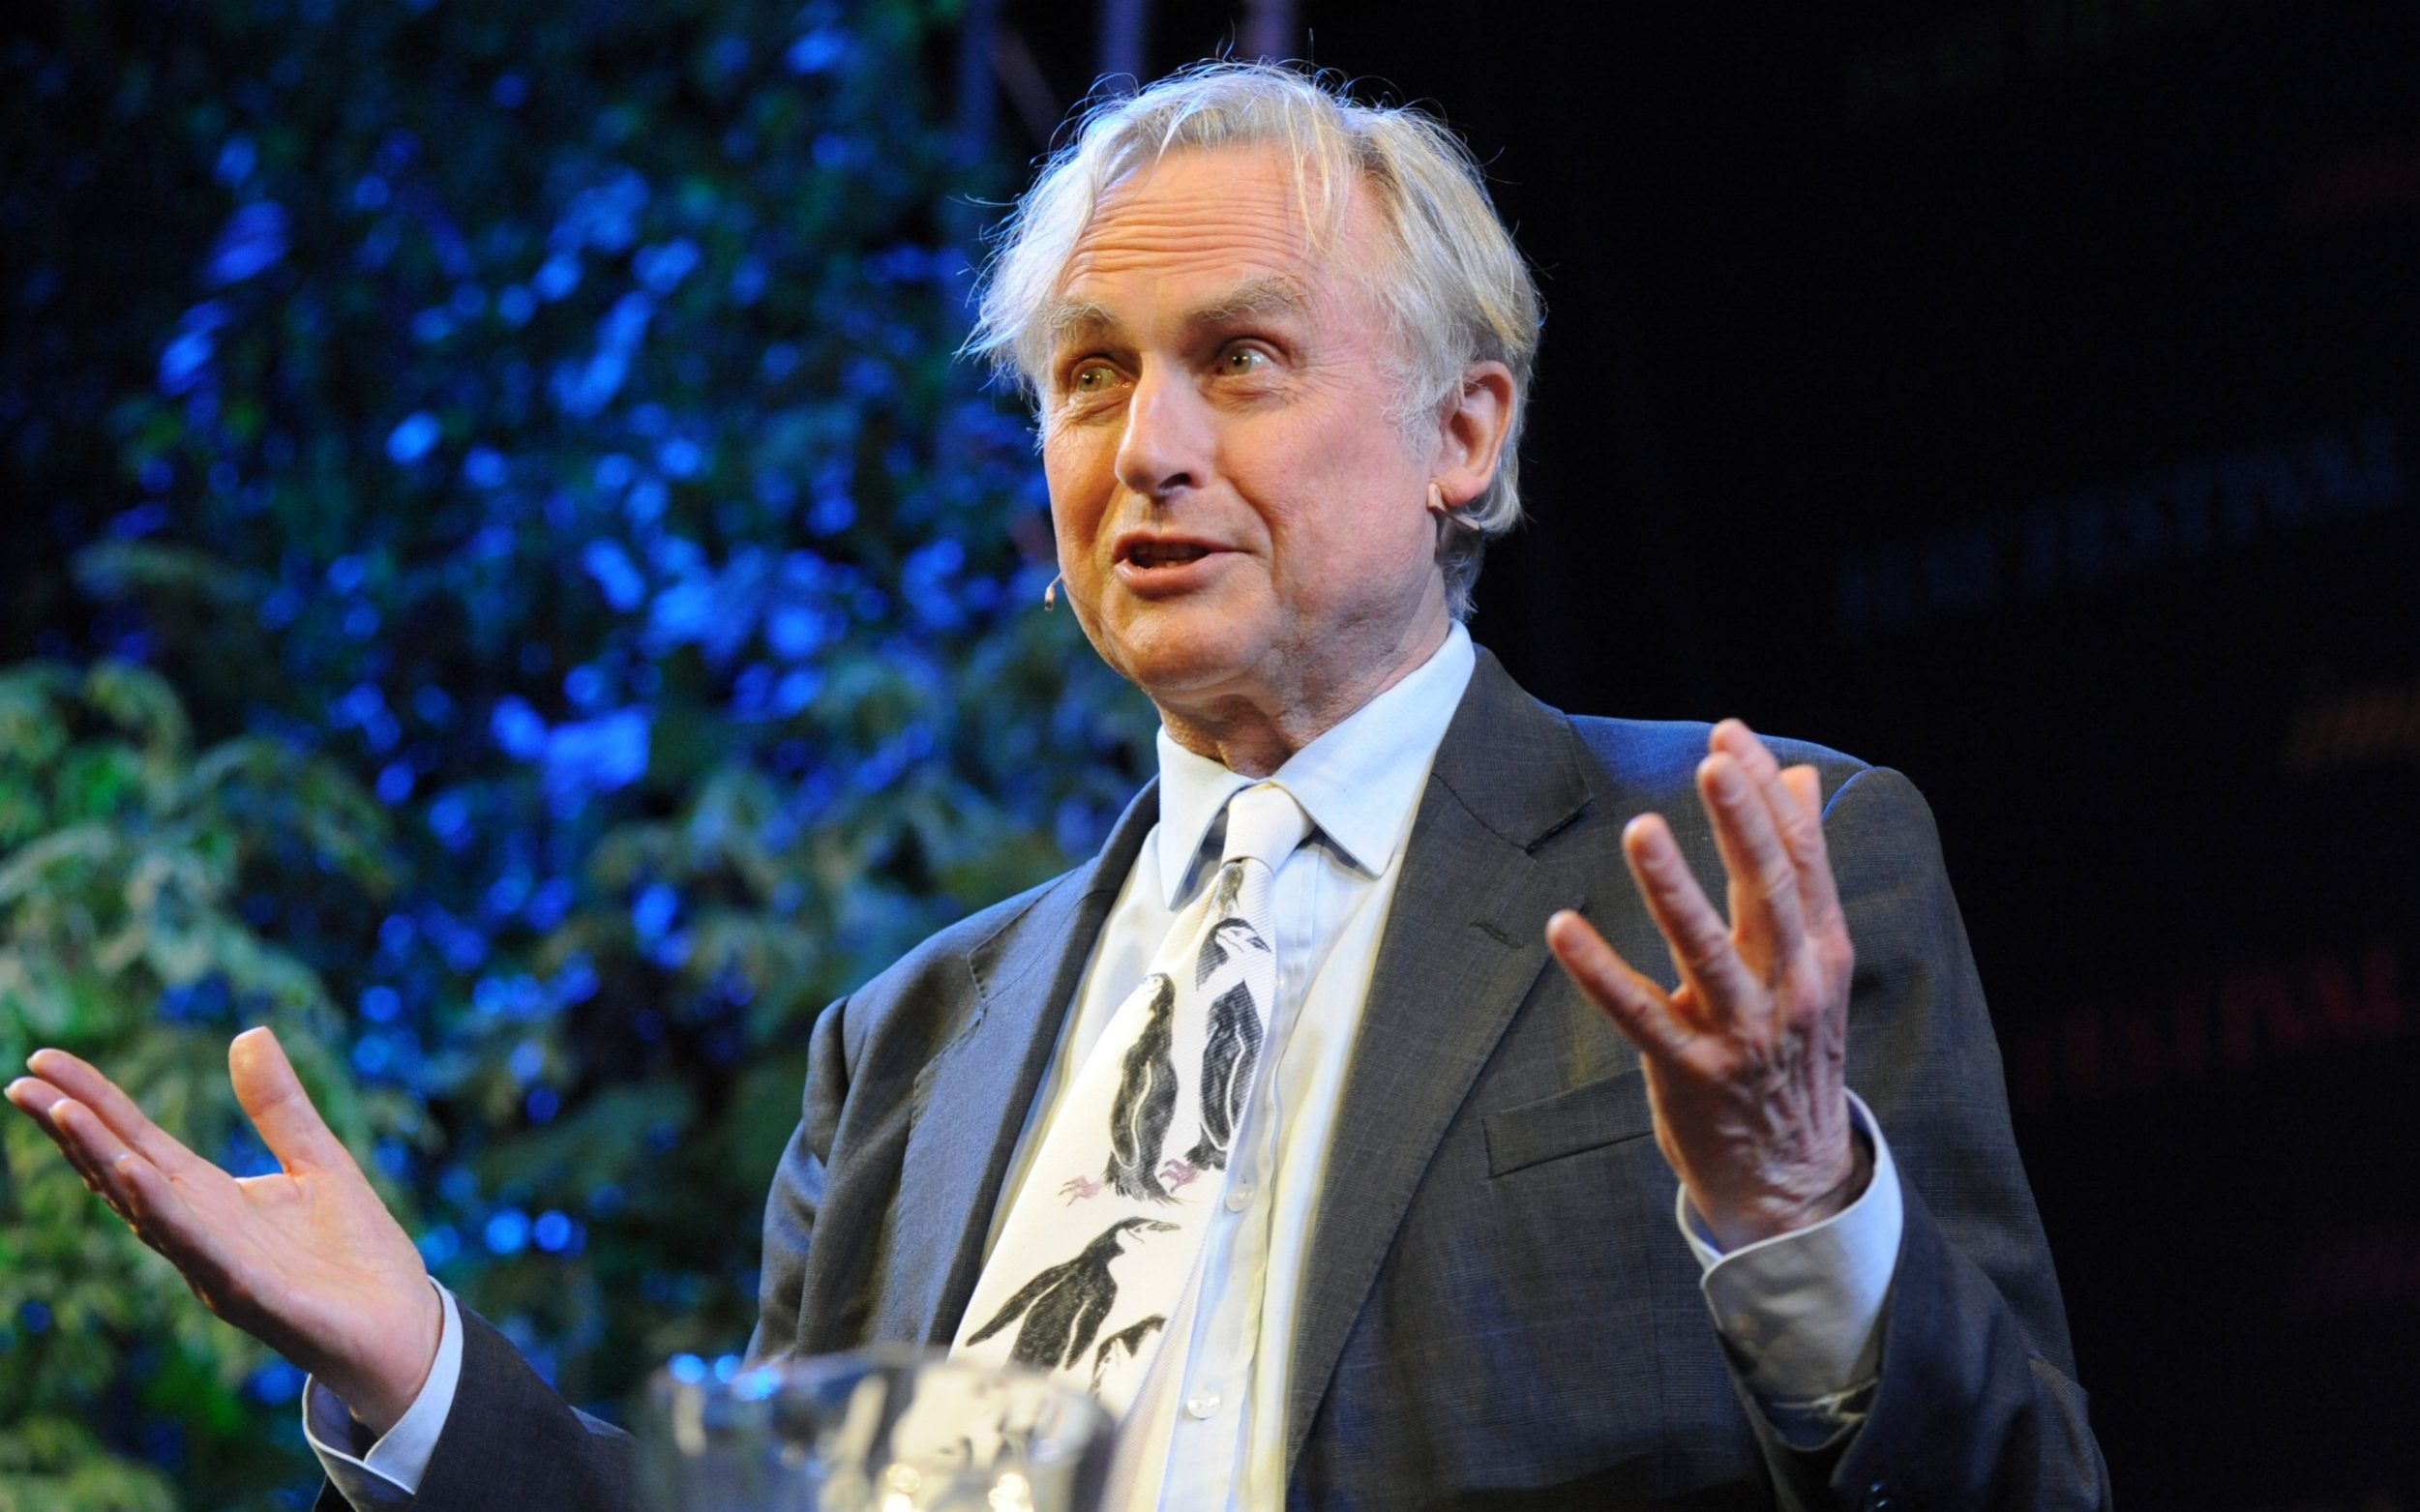 Richard Dawkins hits back at cancellation of Berkeley event for 'abusive speech against Islam'